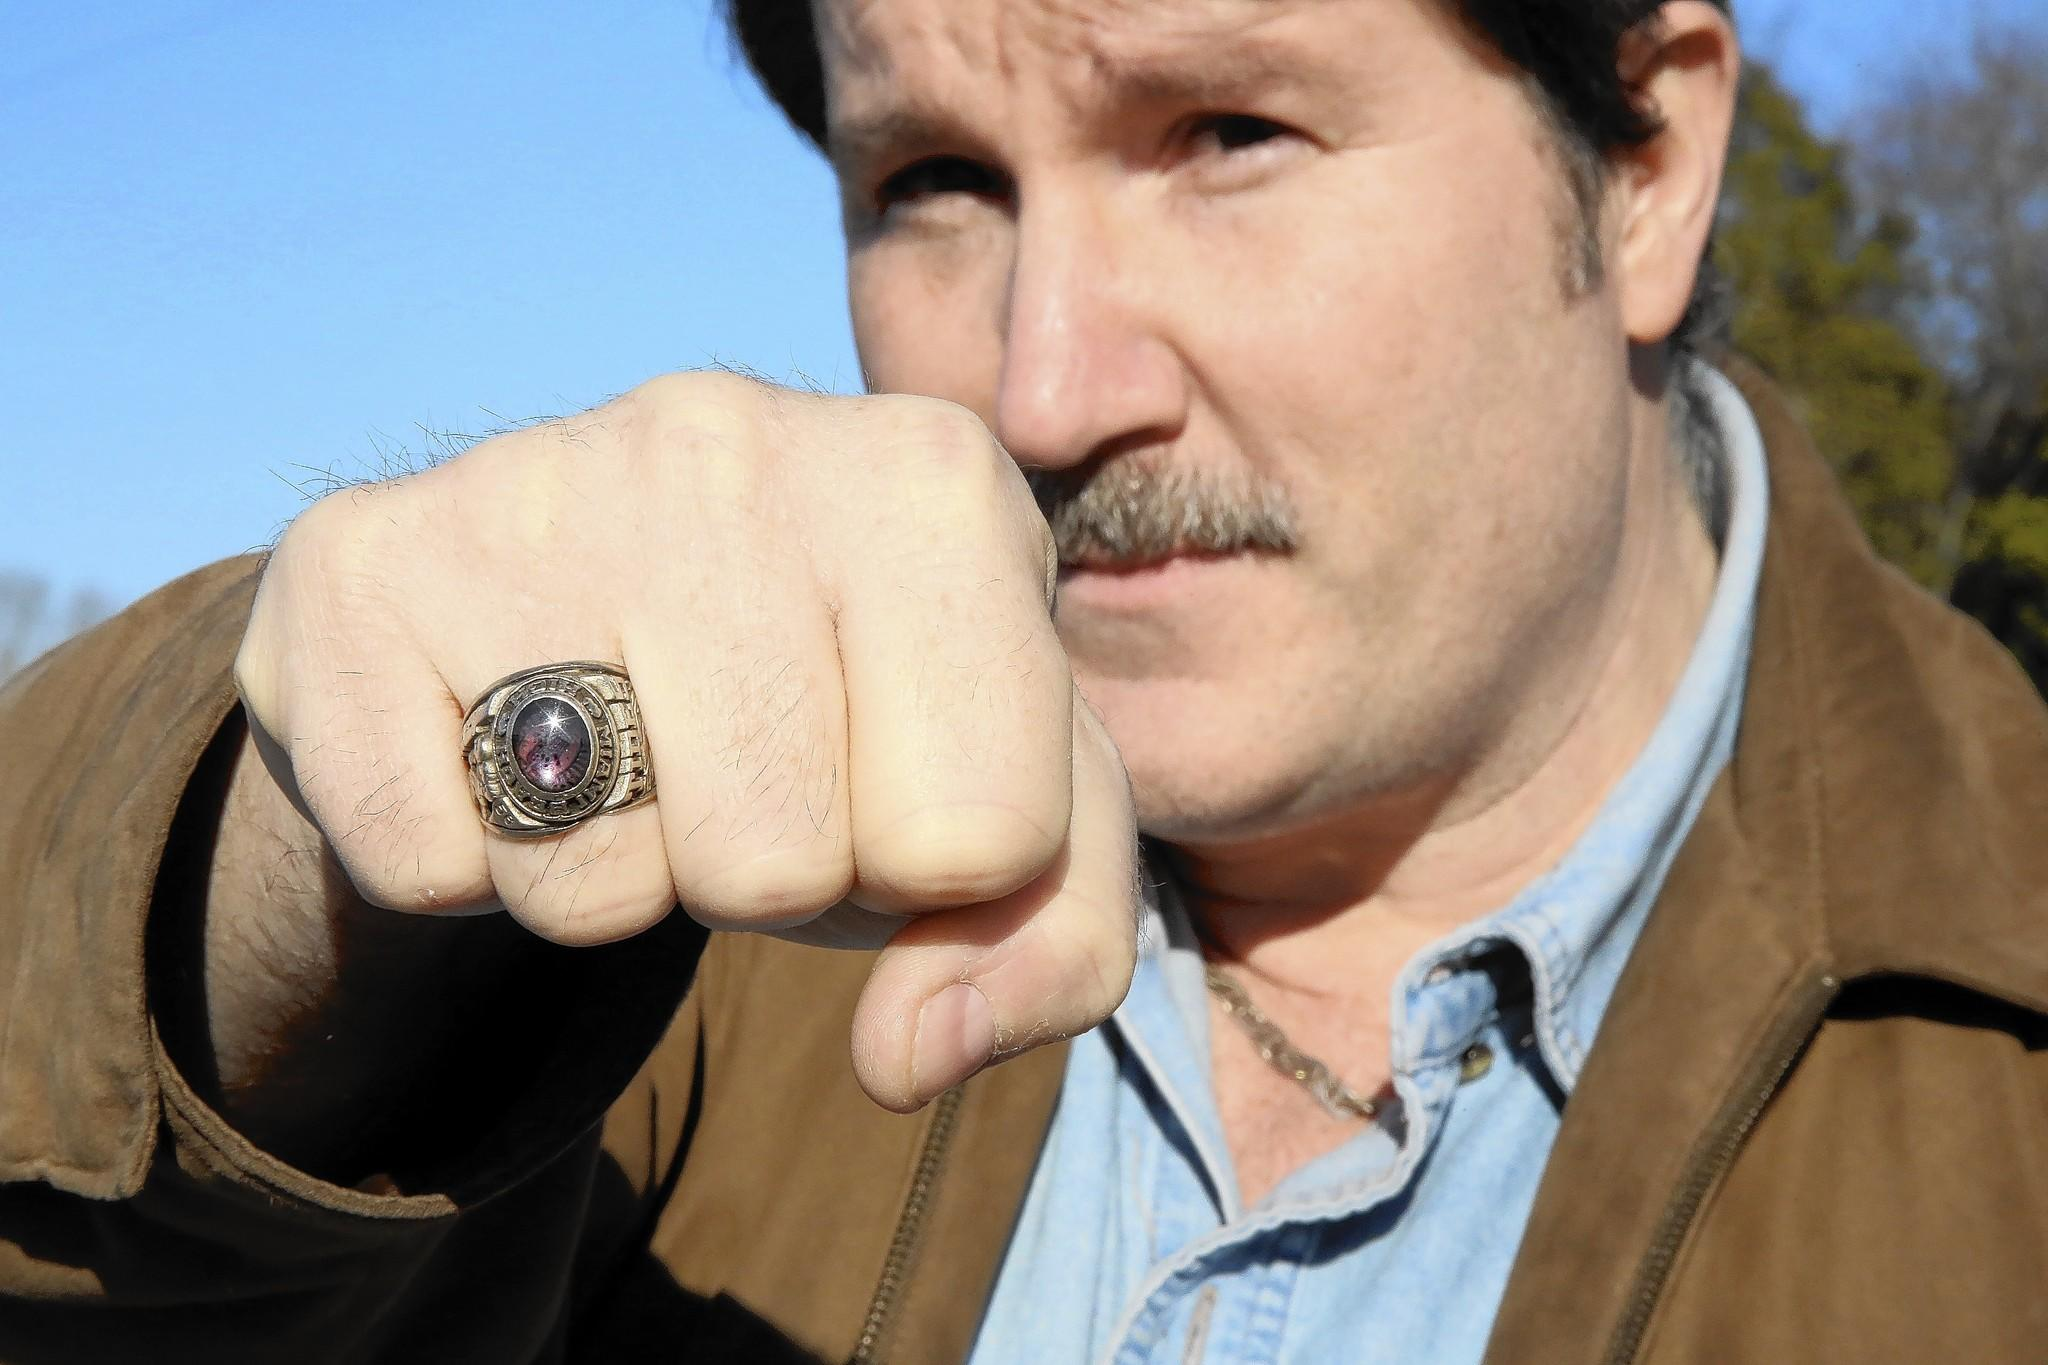 John Sims displays his retruned ring.